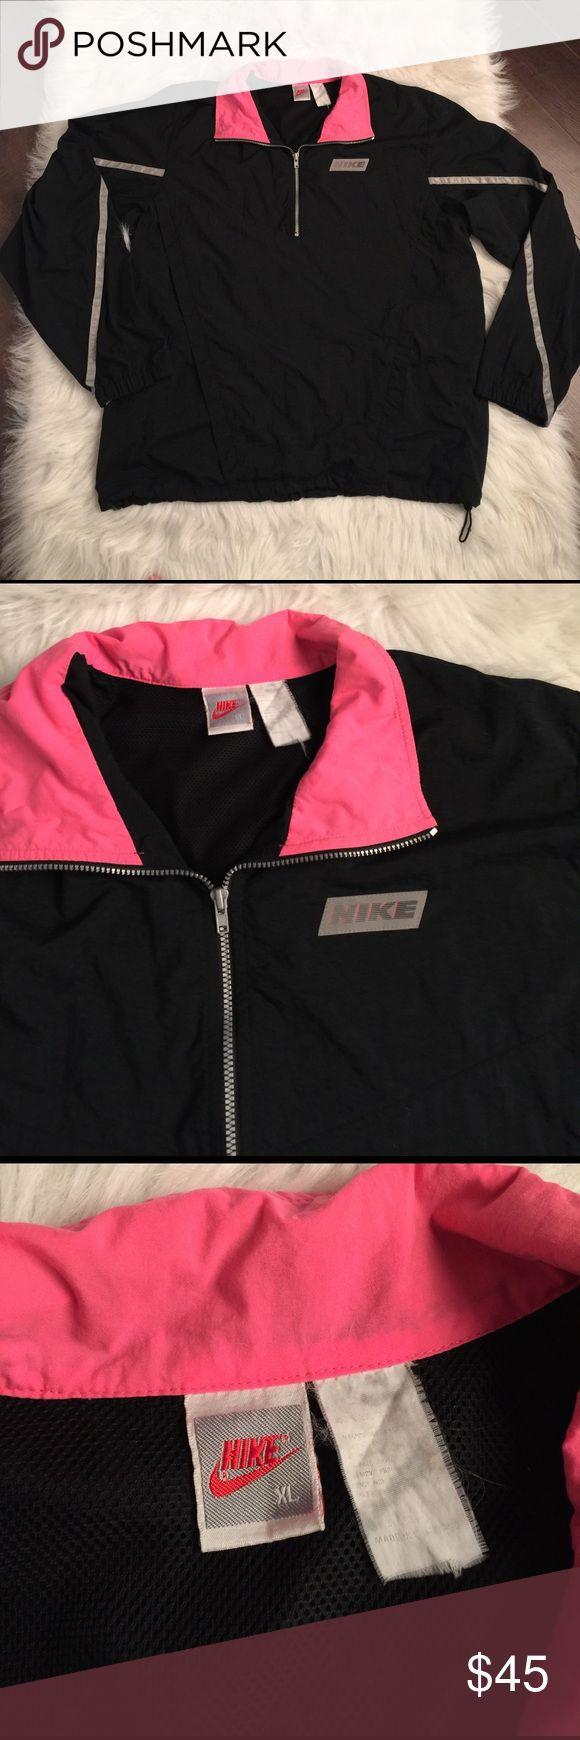 Vintage Nike jacket. Vintage Nike windbreaker Excellent condition vintage 90s Nike windbreaker jacket. Black with reflective silver and neon pink. Size extra large with drawstring bottom. All zippers work, no stains or holes. Please see photos for wear and details. No low ball offers, reasonable offers considered. Nike Jackets & Coats Utility Jackets